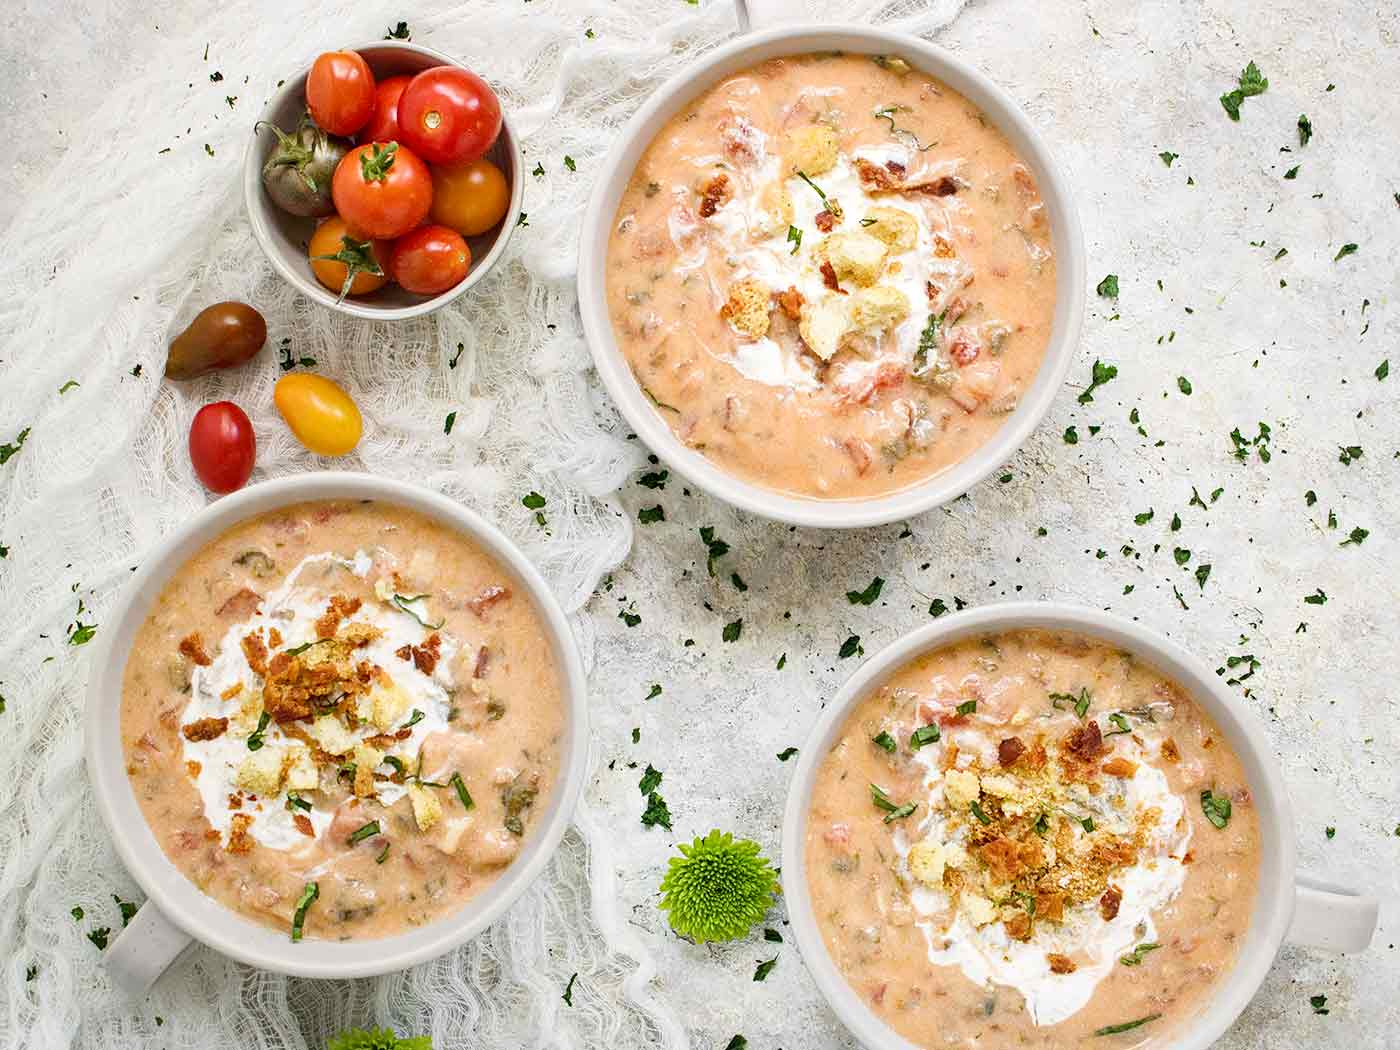 Three mugs of BLT Soup, swirled with creme fraiche and topped with crushed croutons